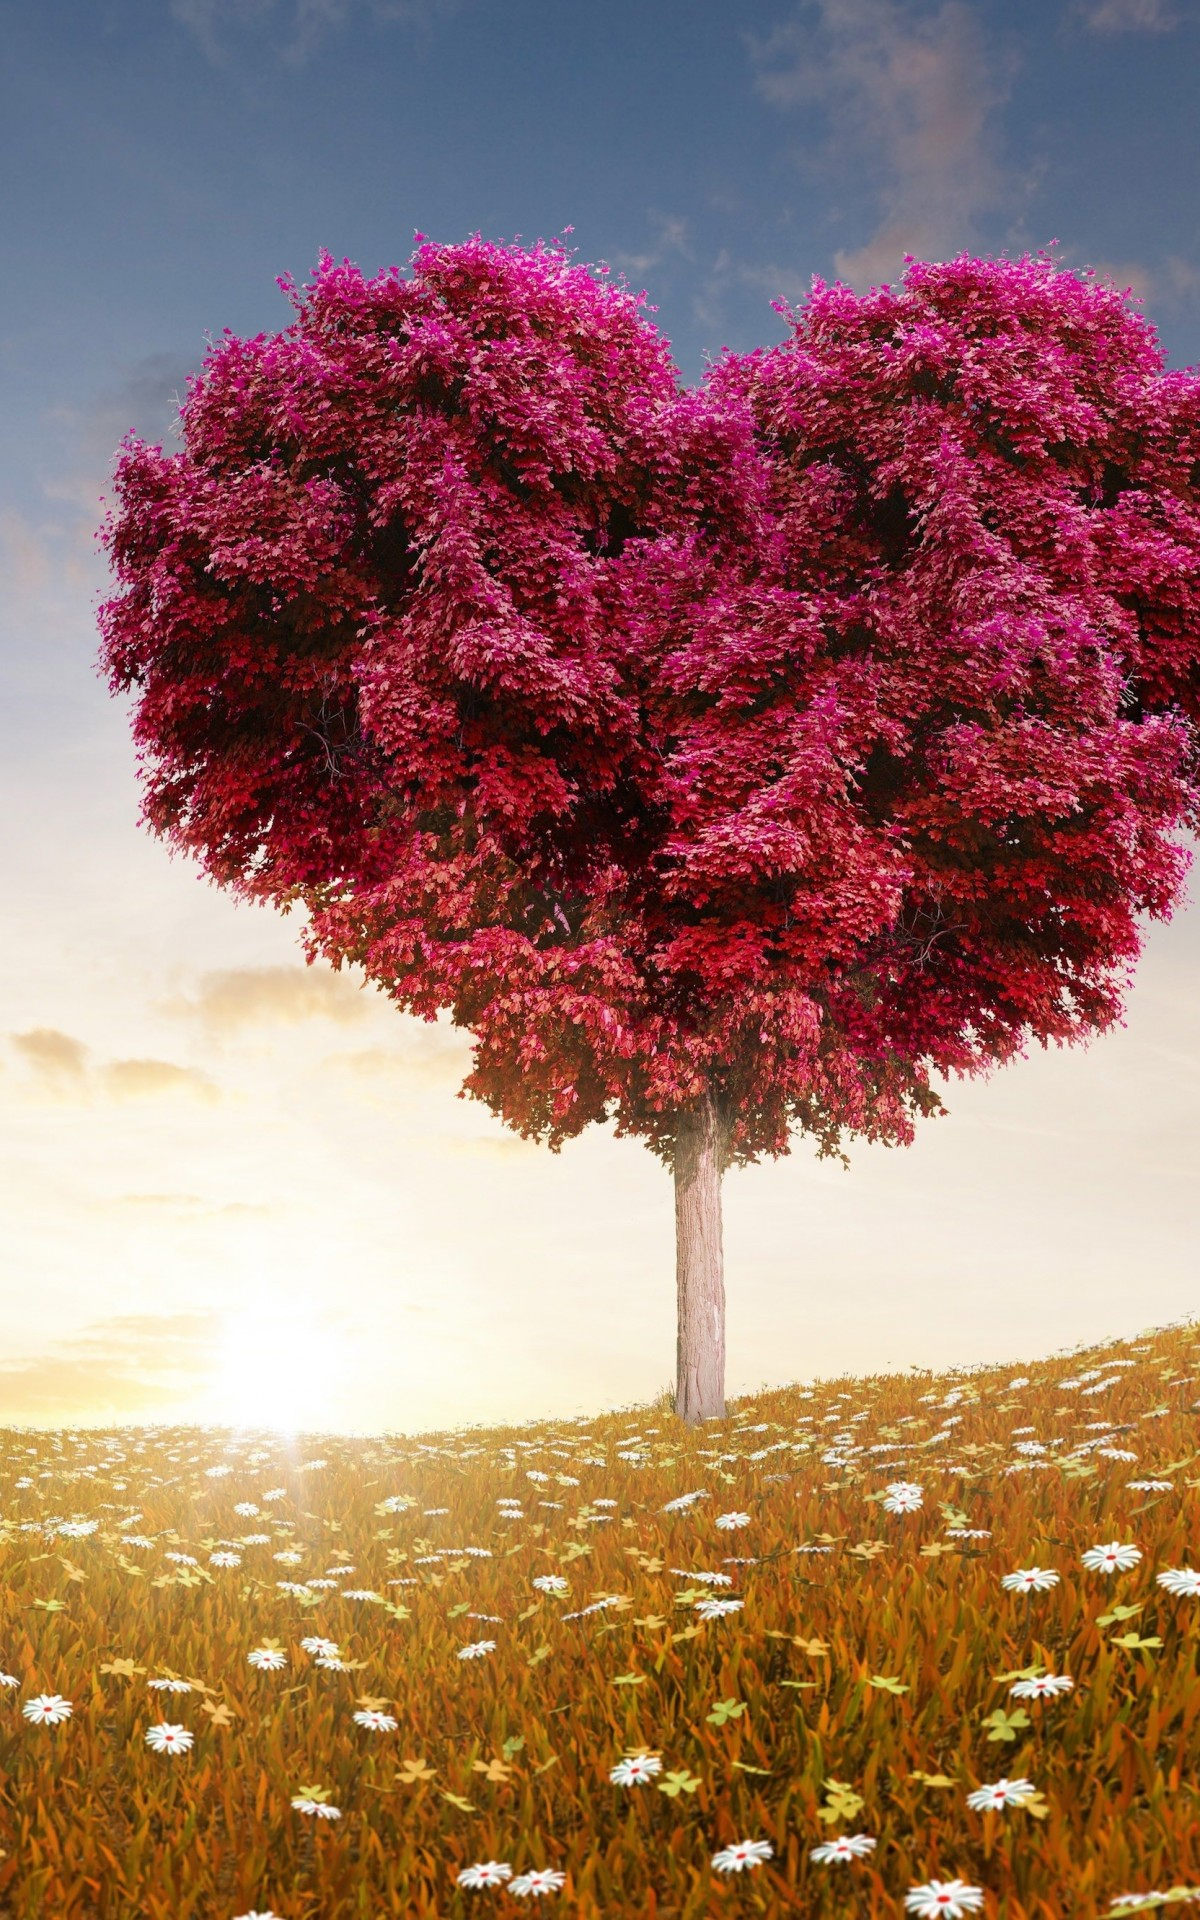 Tree Of Love Wallpaper for Amazon Kindle Fire HDX